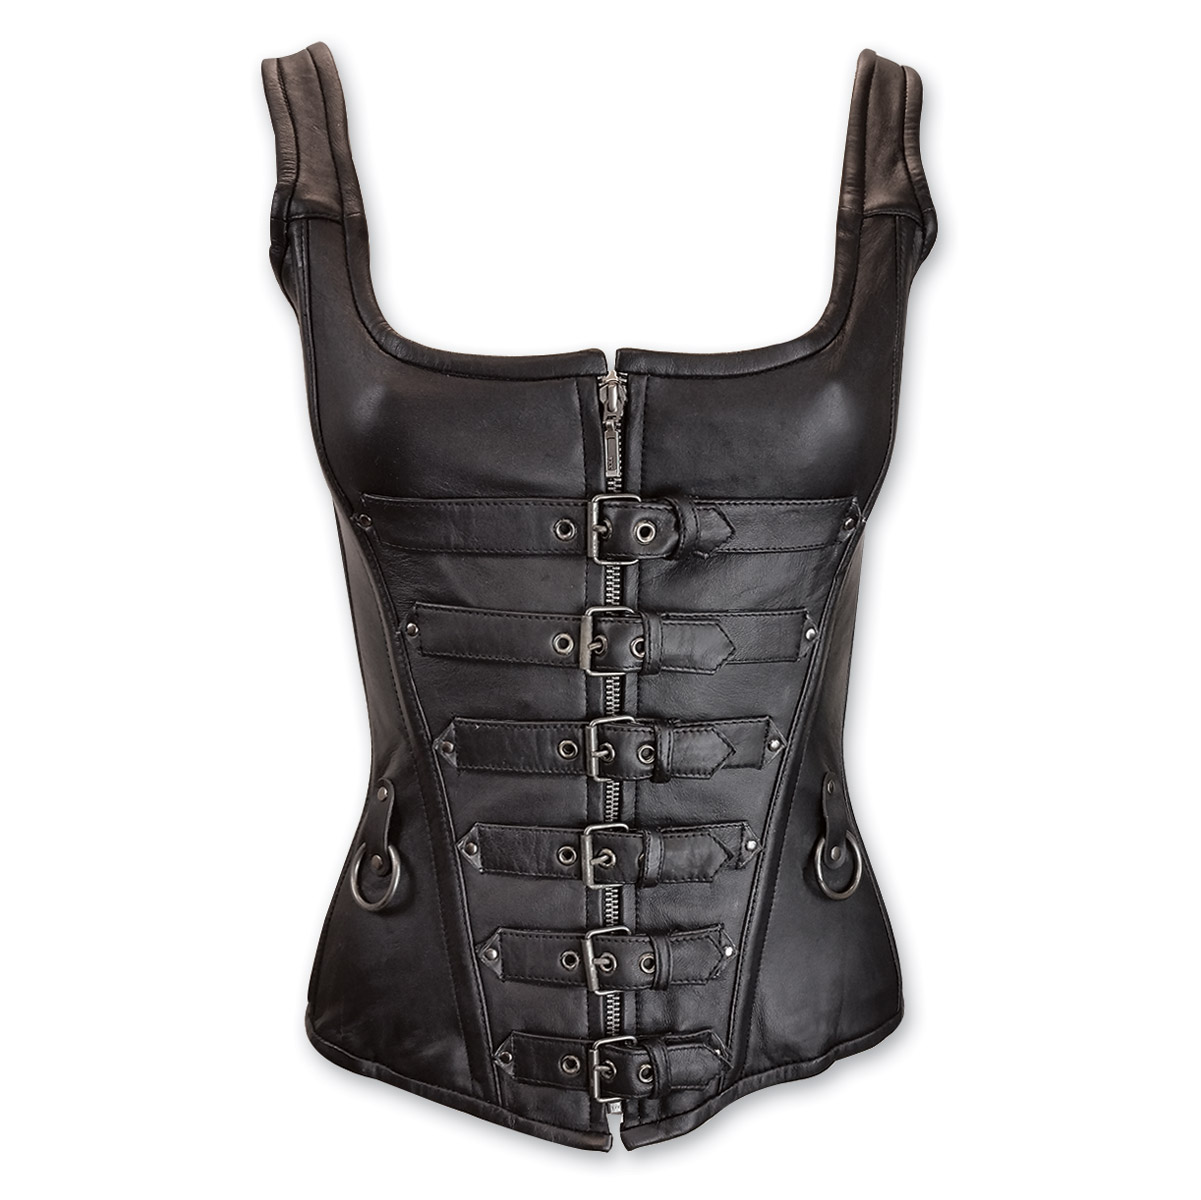 dd60de70eb5 Vance Leathers Women s Rings and Straps Black Leather Corset ...